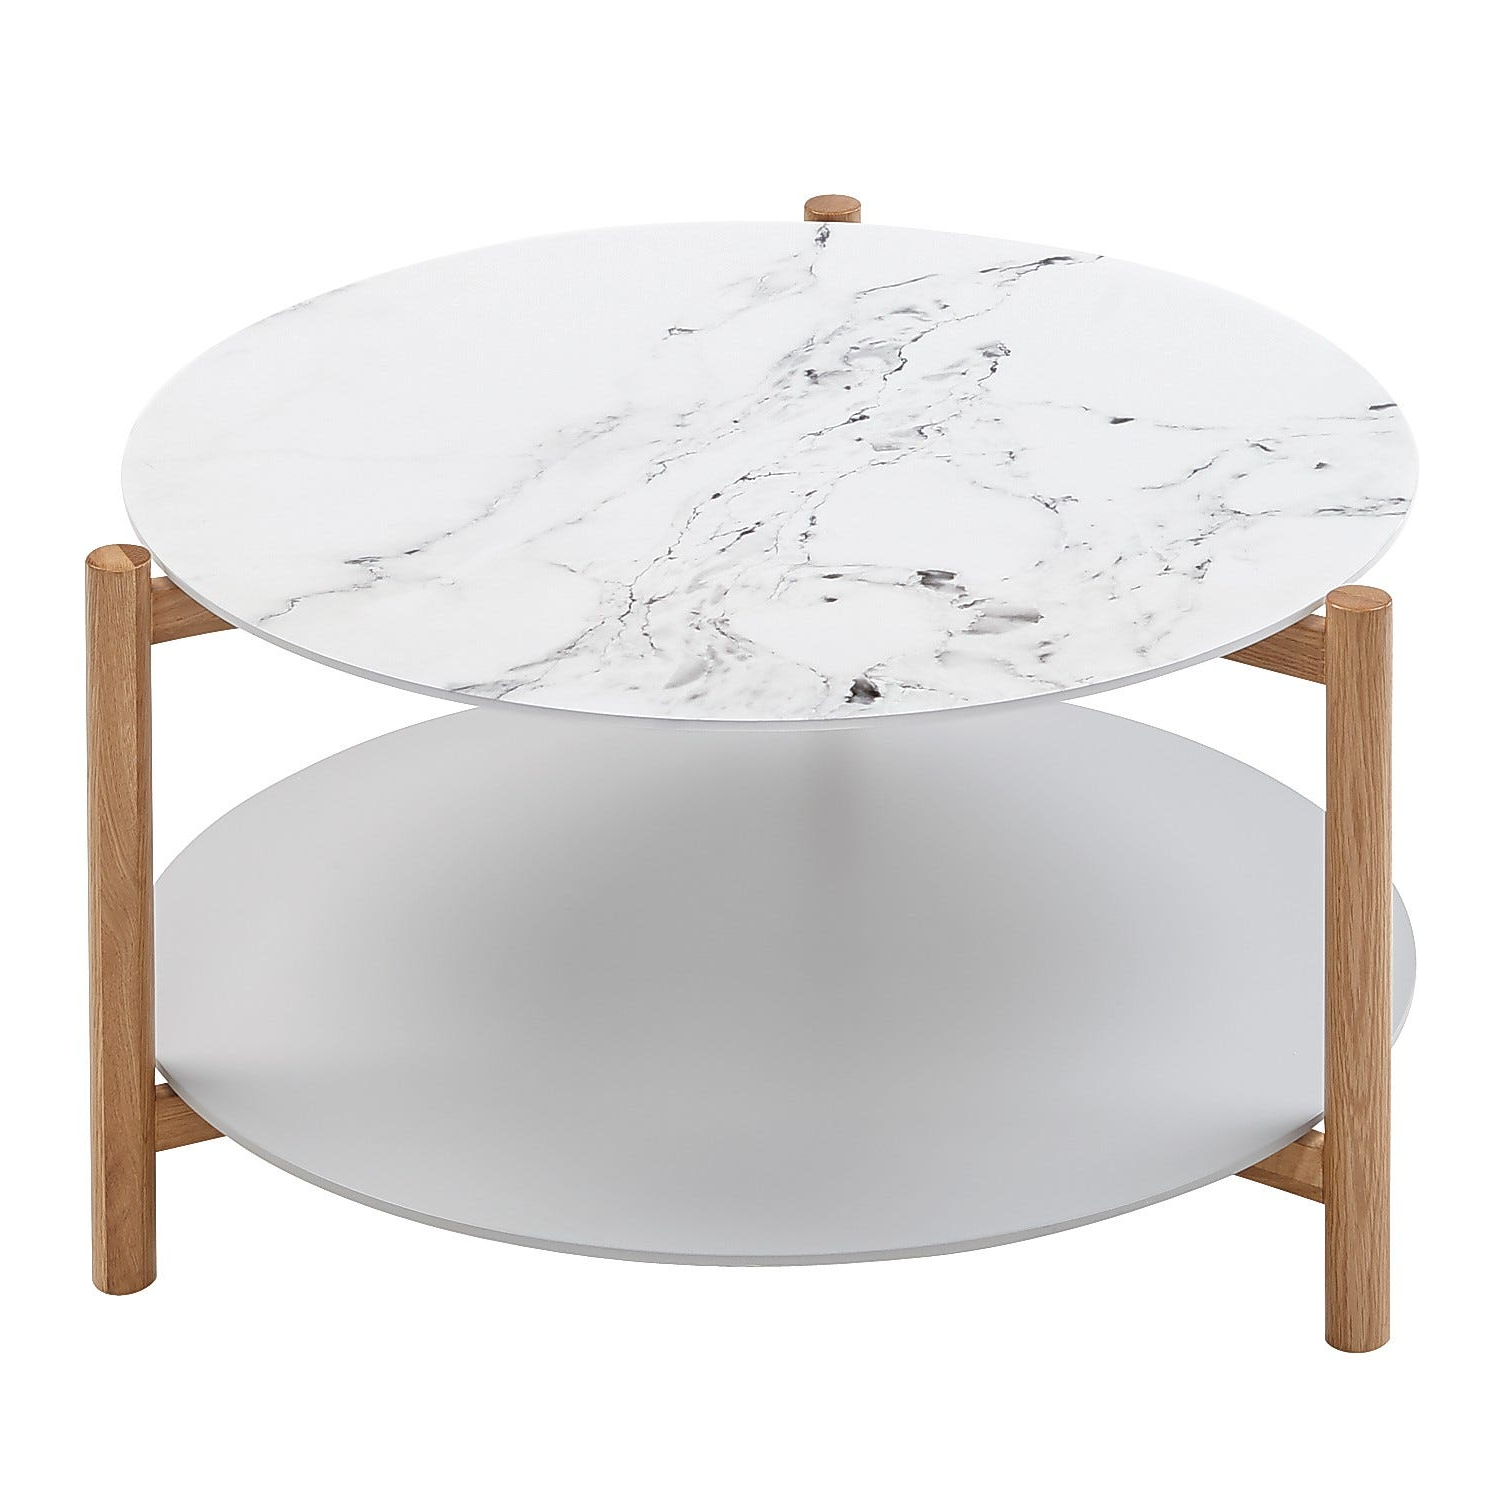 Modern White Coffee Table 700846 Cocktail Tables Mike's With 2020 Arella Ii Modern Distressed Grey White Coffee Tables (View 8 of 20)